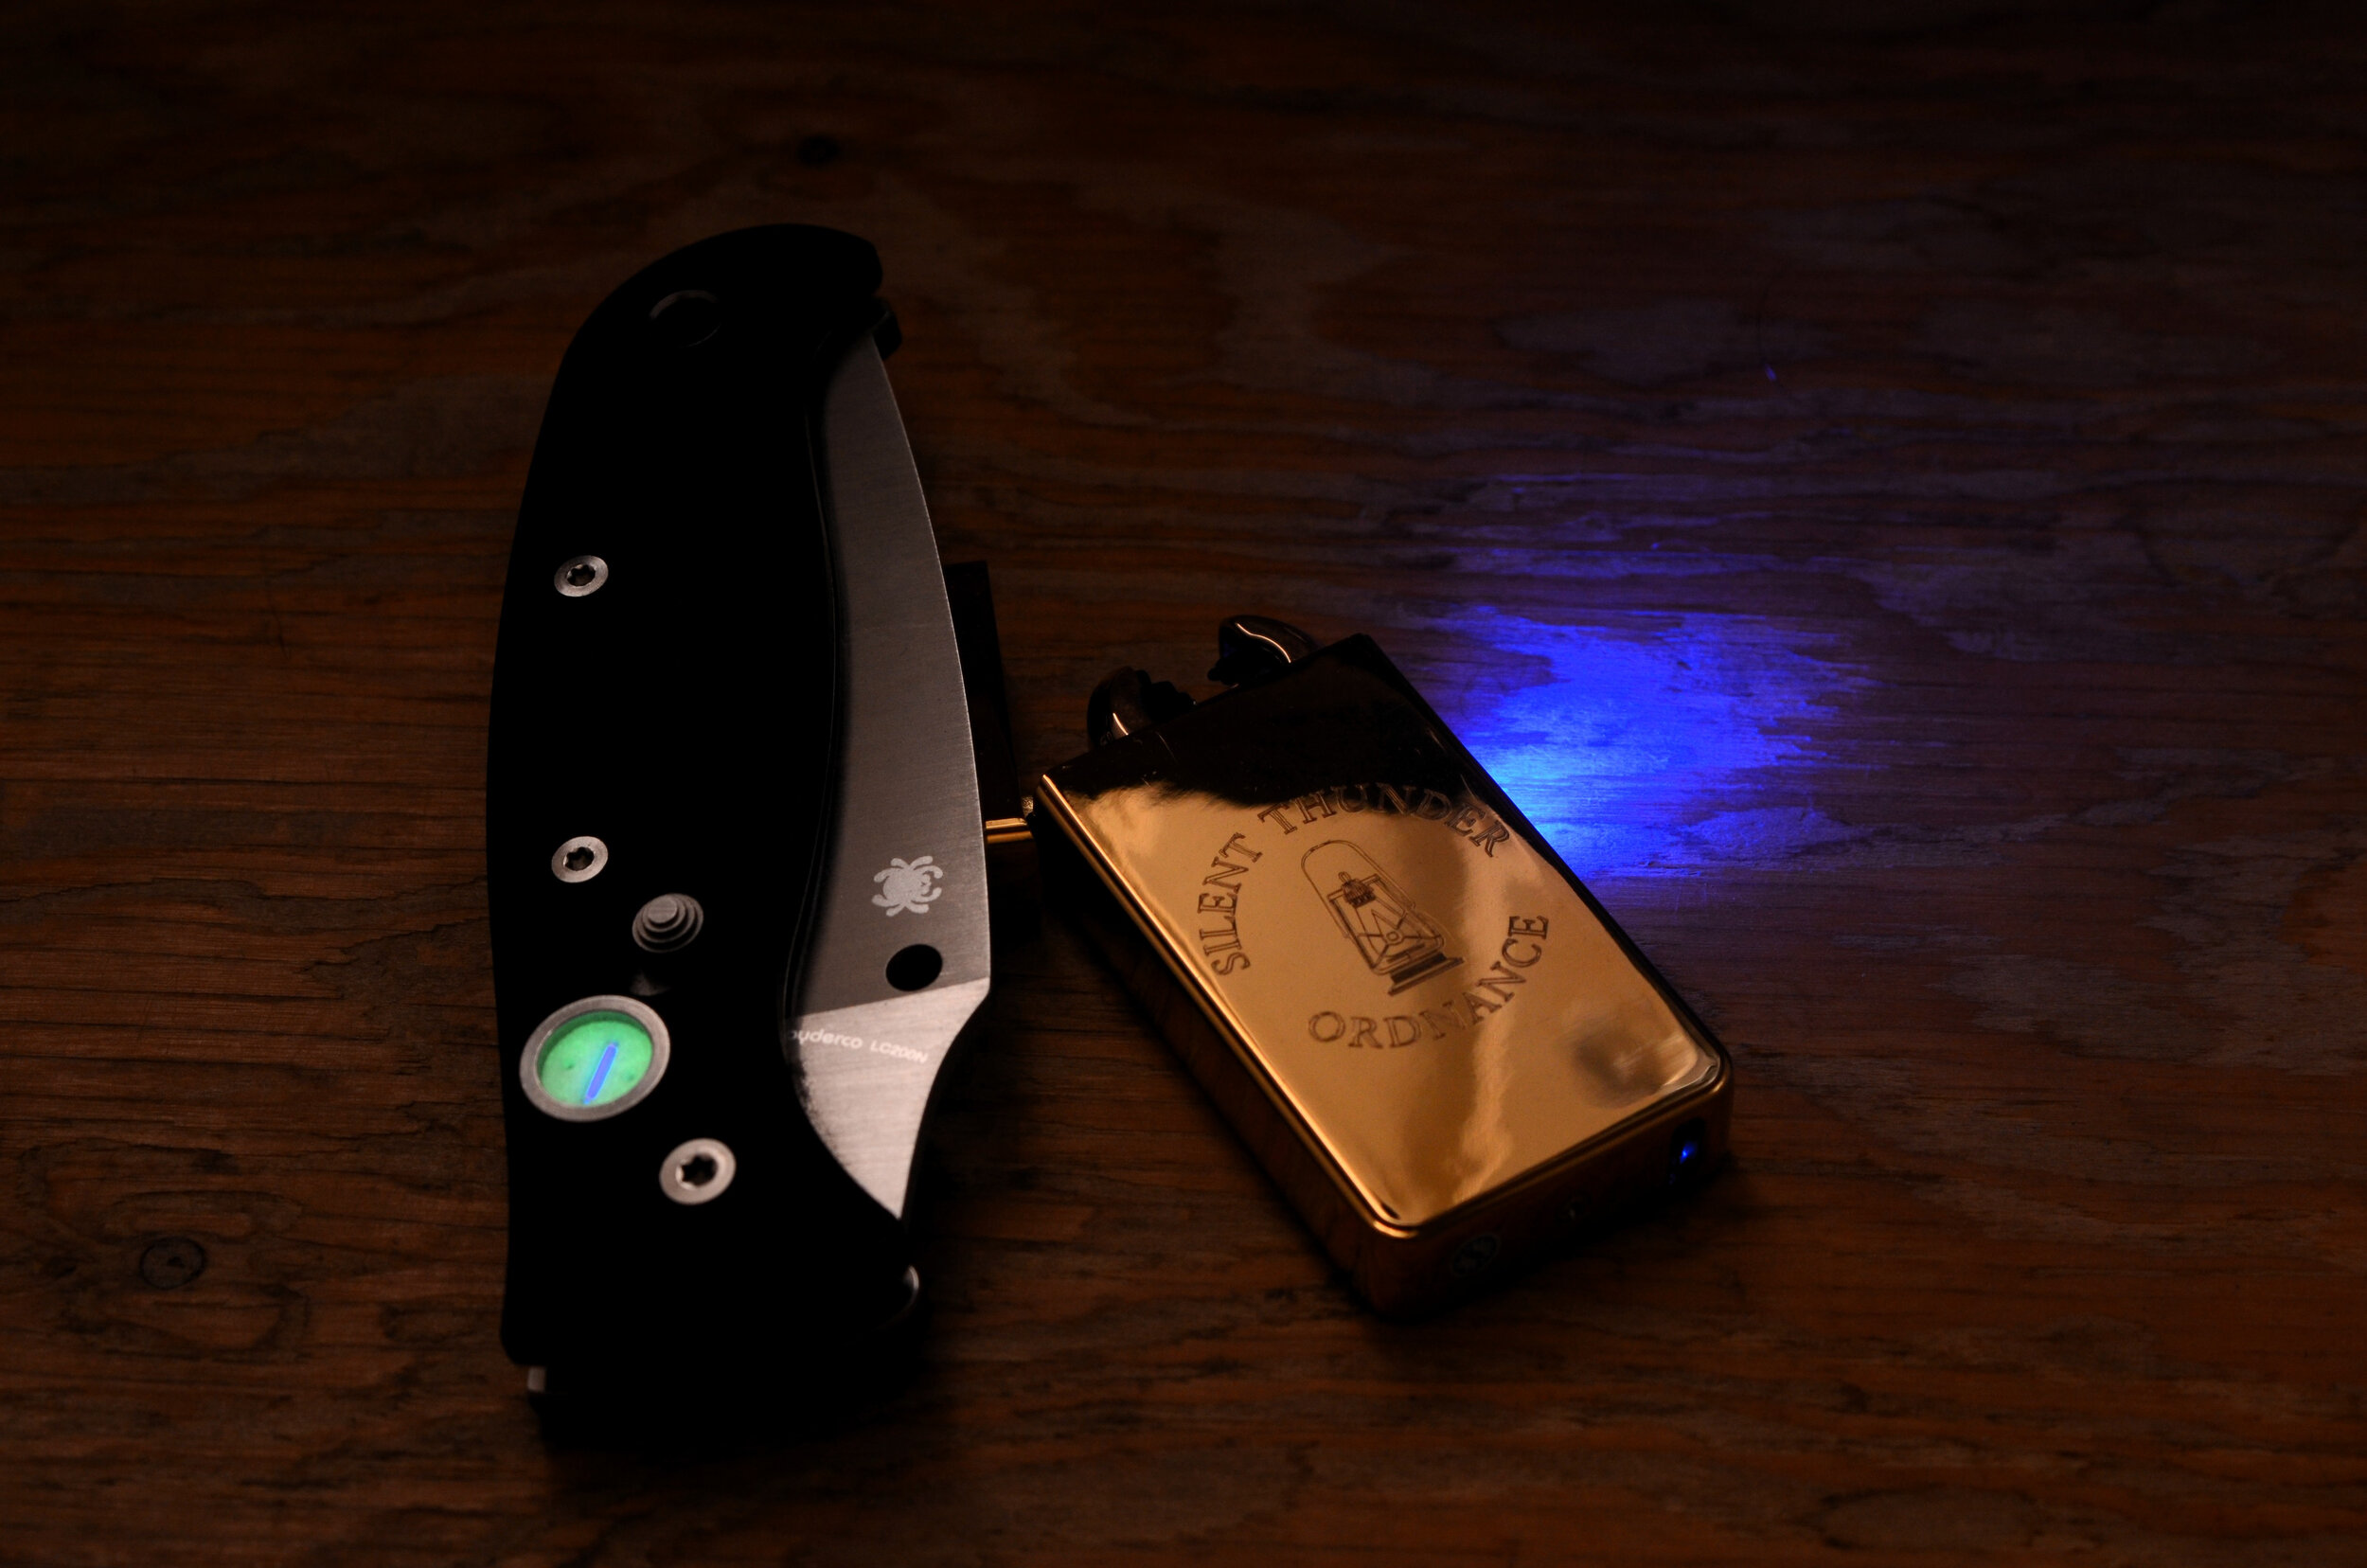 Tritium vial holding GITD insert for a Spyderco Autonomy 2. Seen here with our  arc lighter